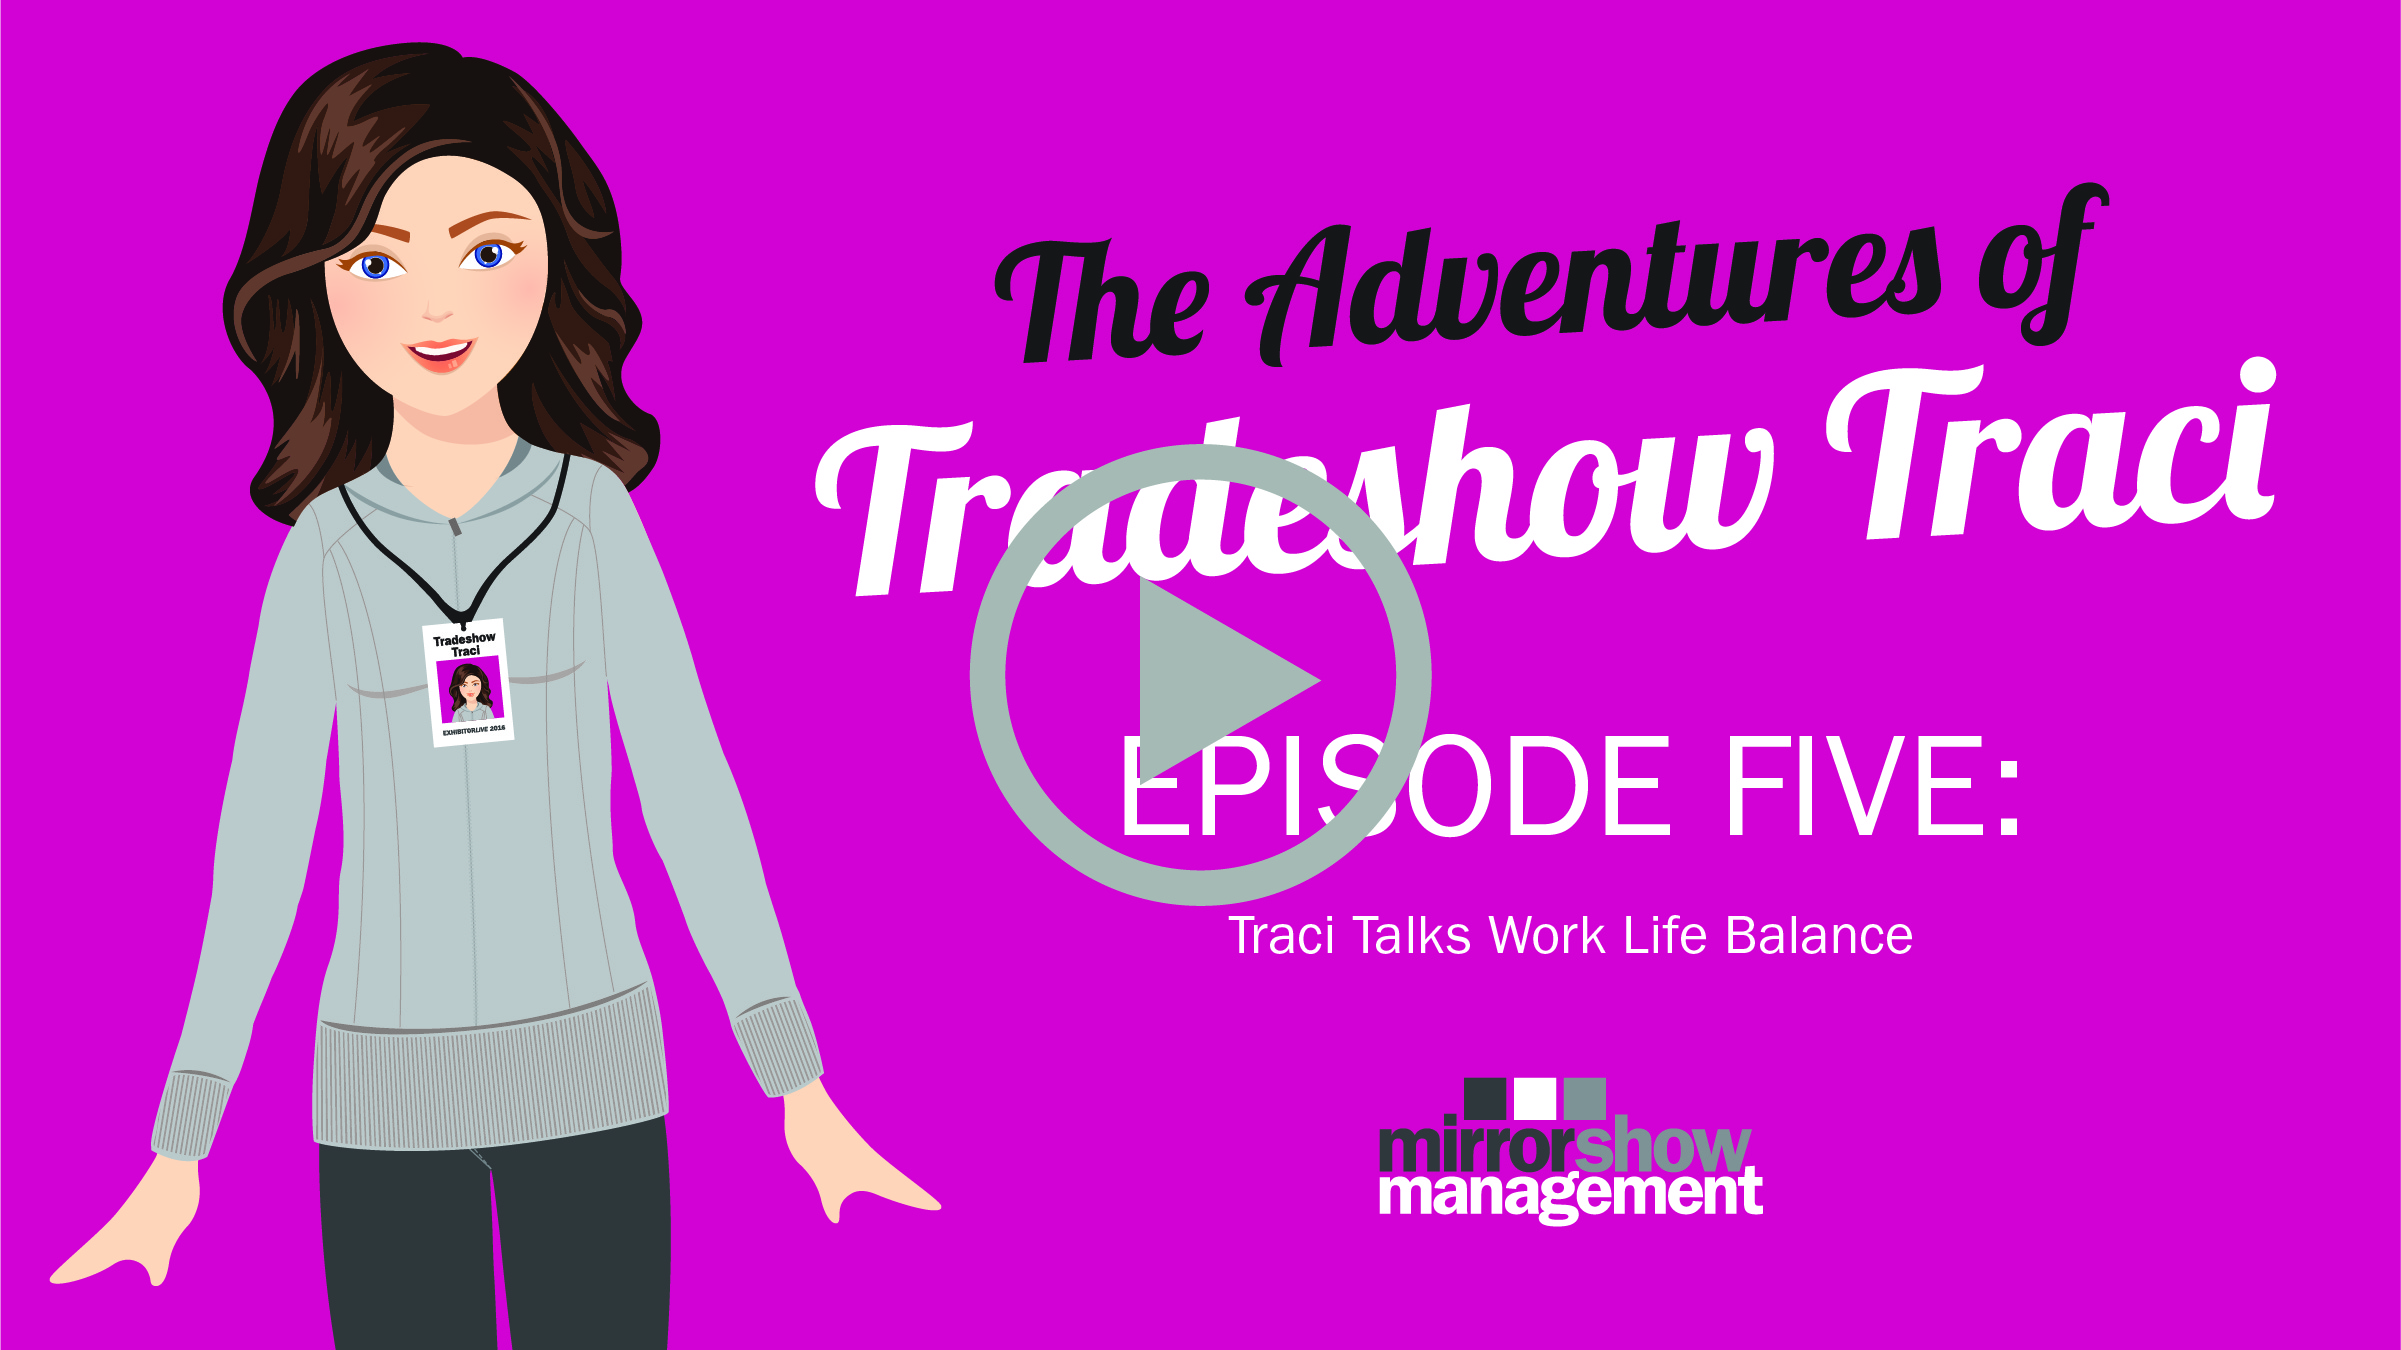 The Adventures of Tradeshow Traci, episode 5